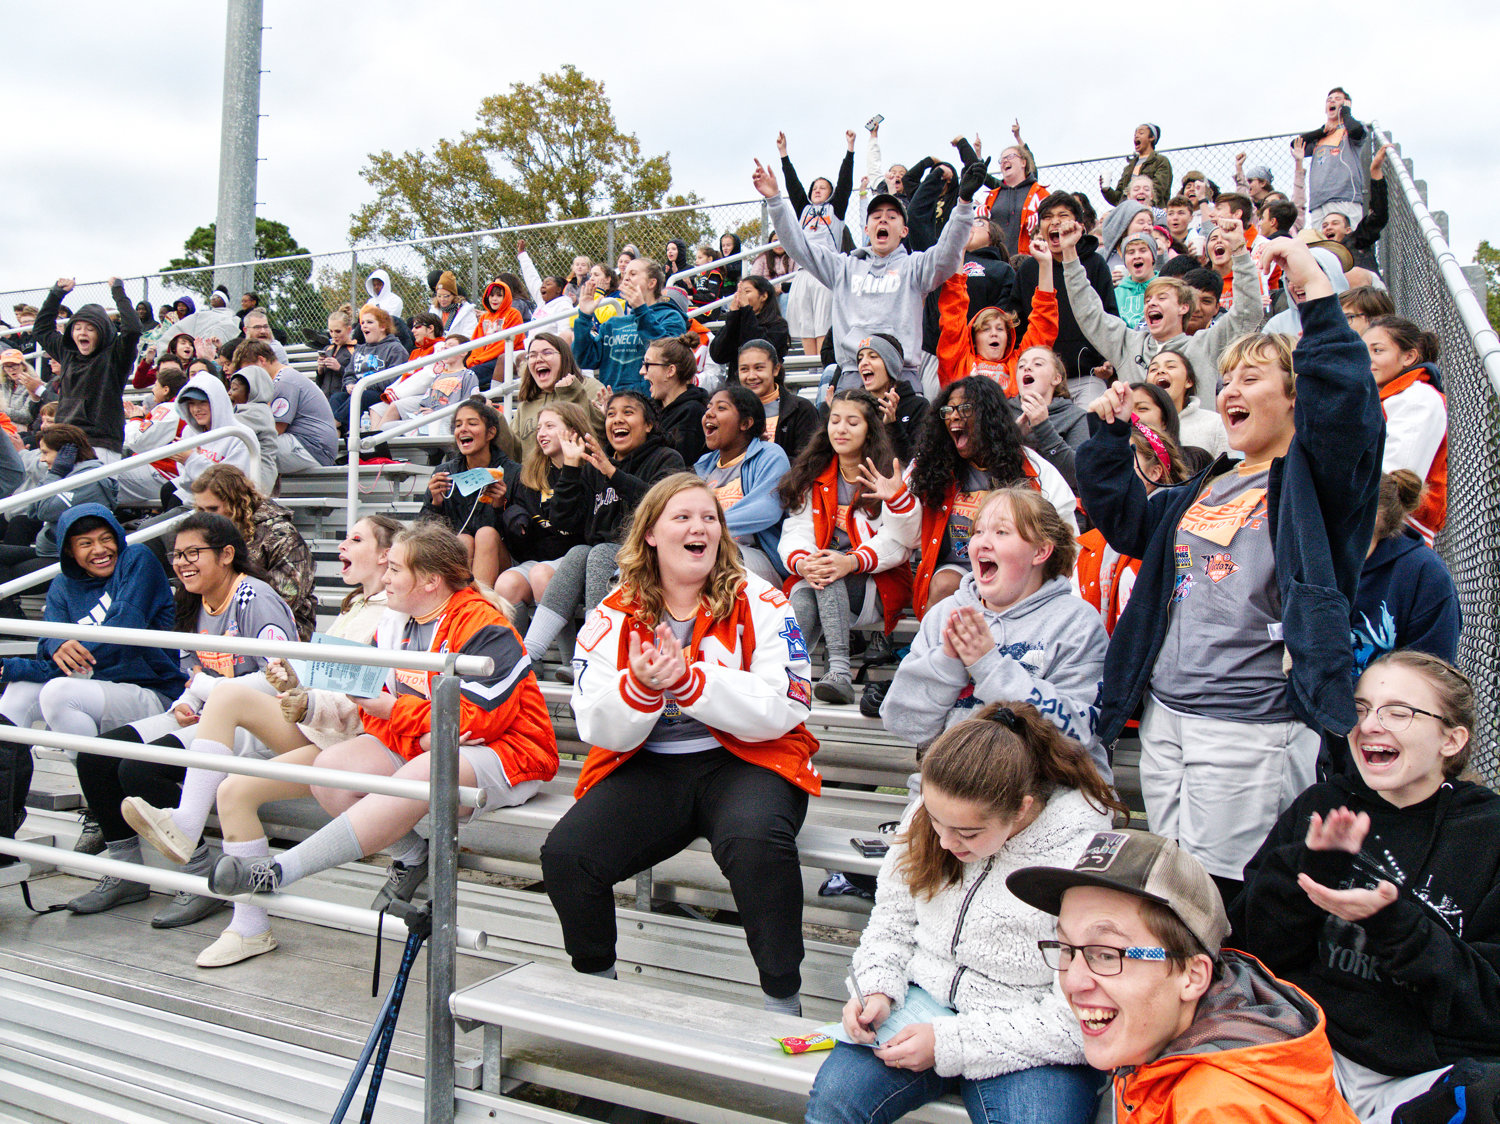 The Mineola band members celebrate making it to the out of prelims and into the finals Saturday afternoon.